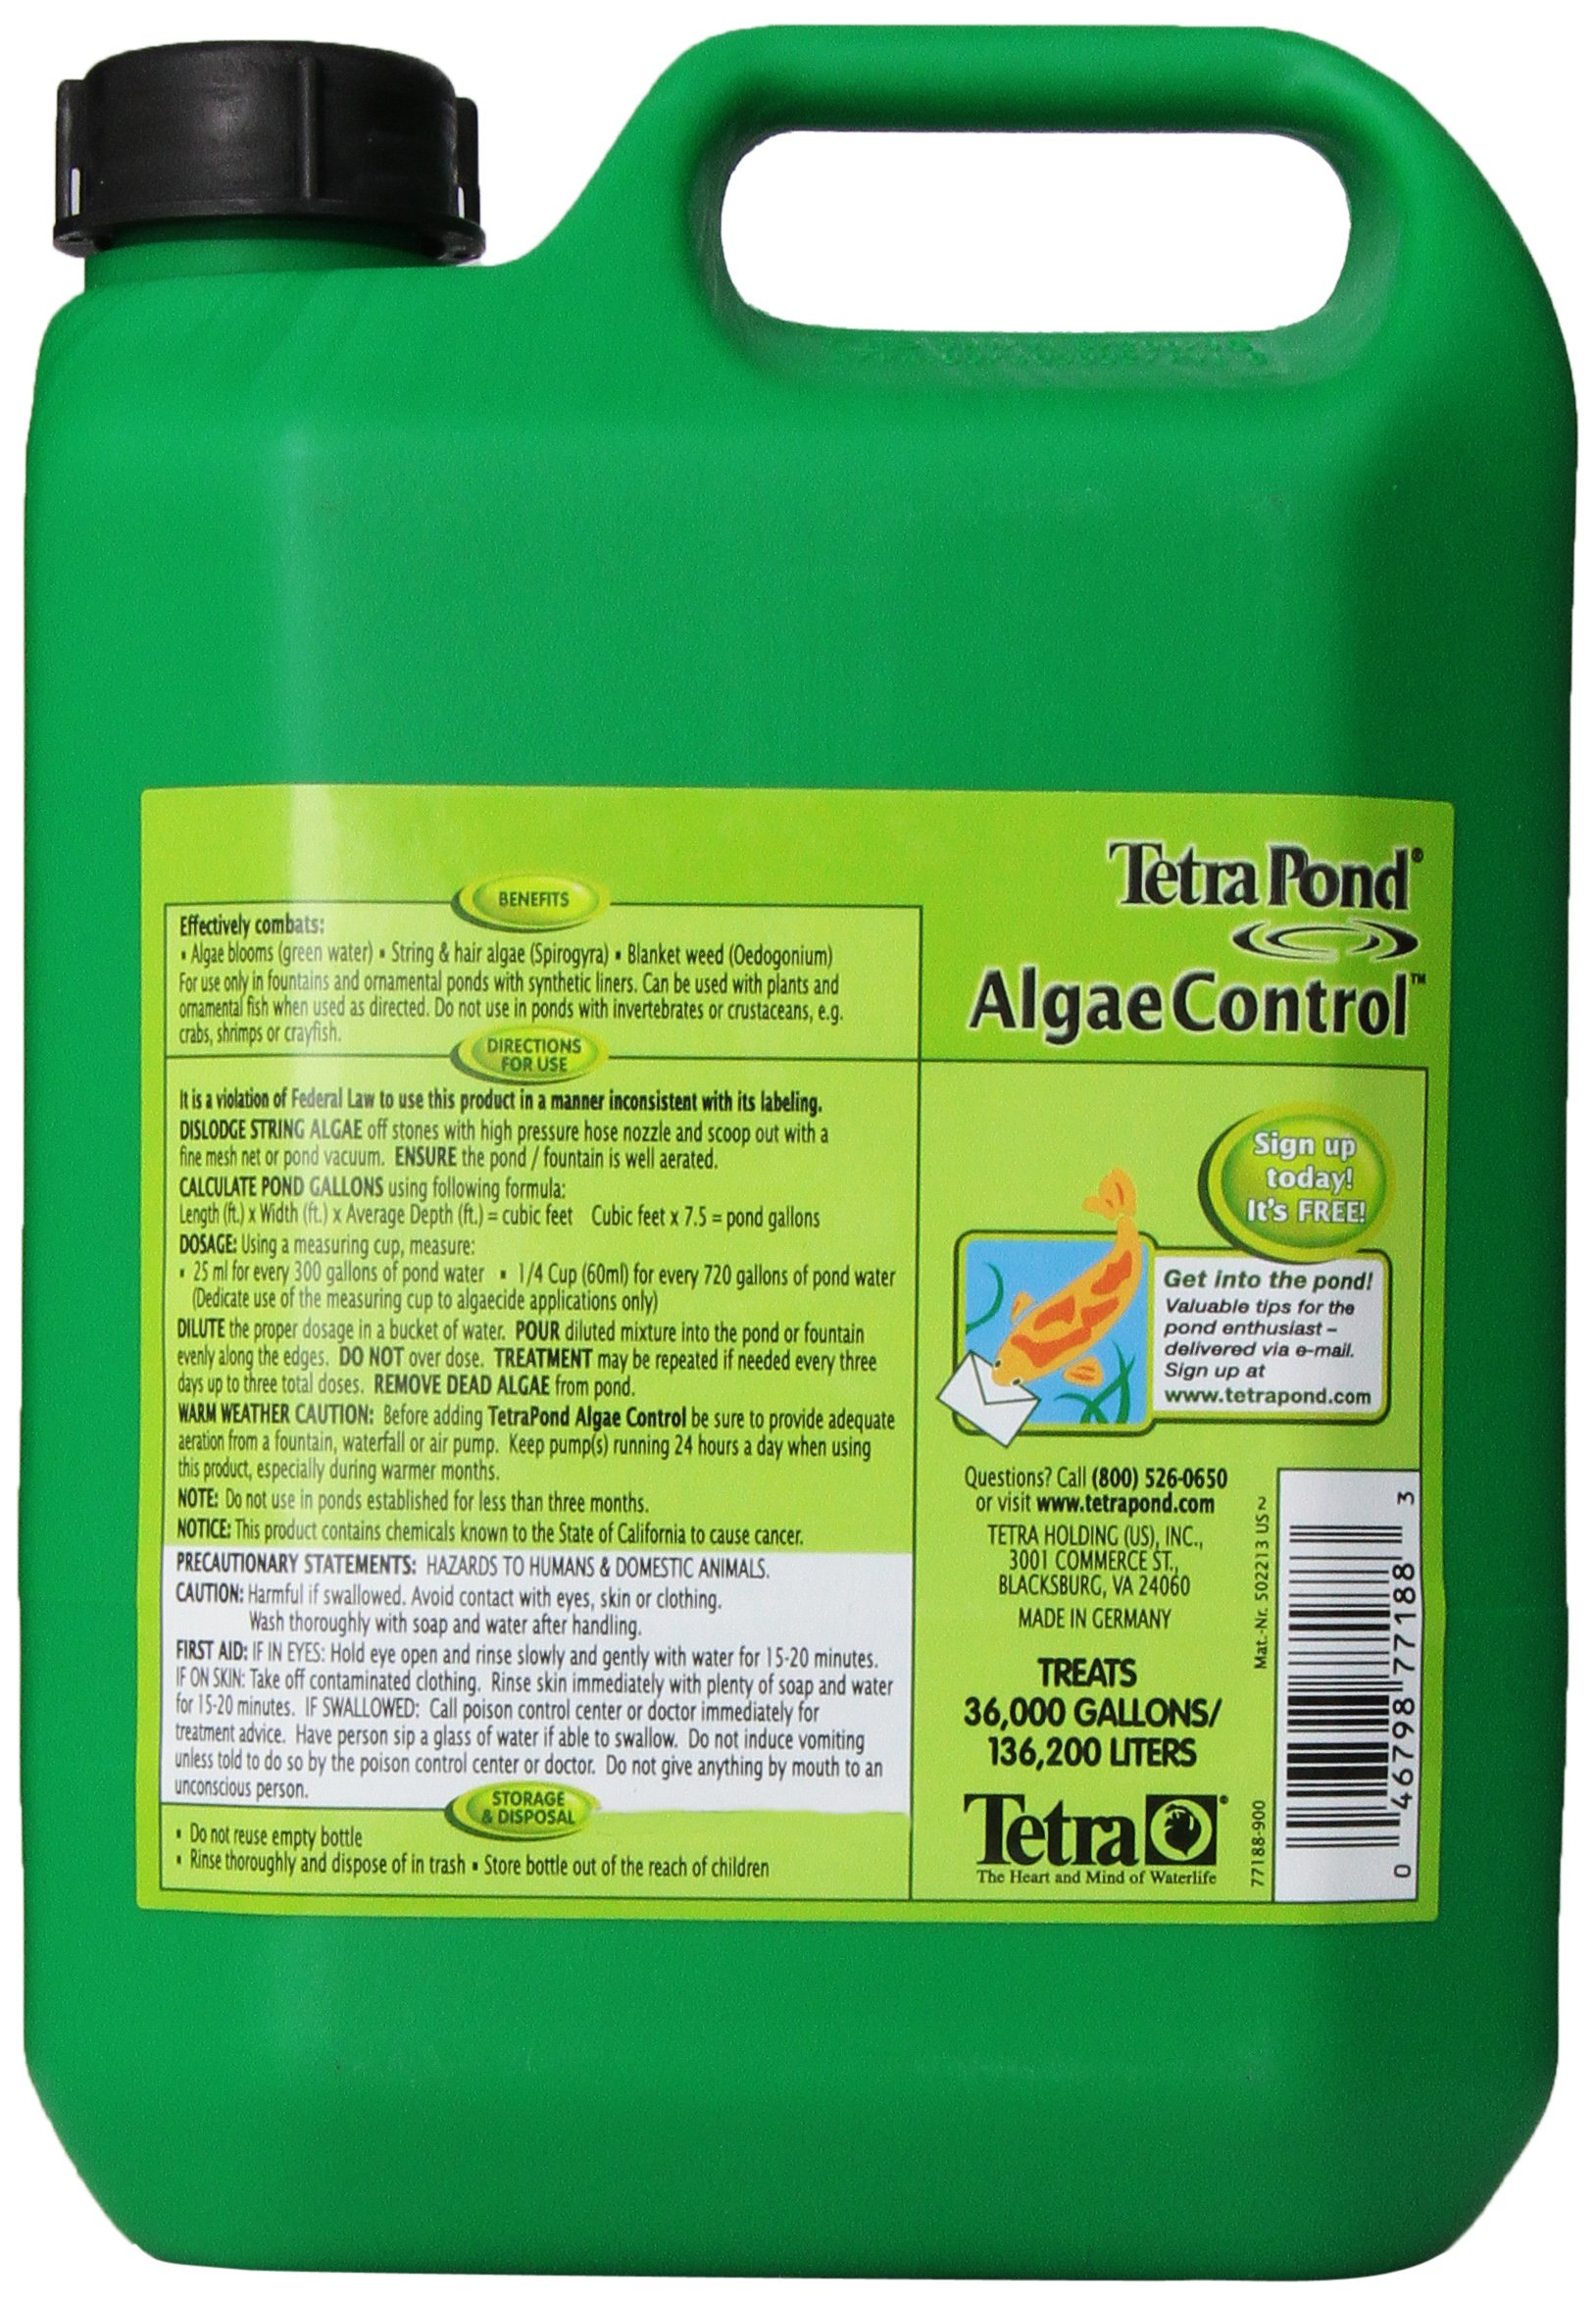 Tetra 77188 Algae Control Treats 36000 gallons, 101.4-Ounce by Tetra Pond